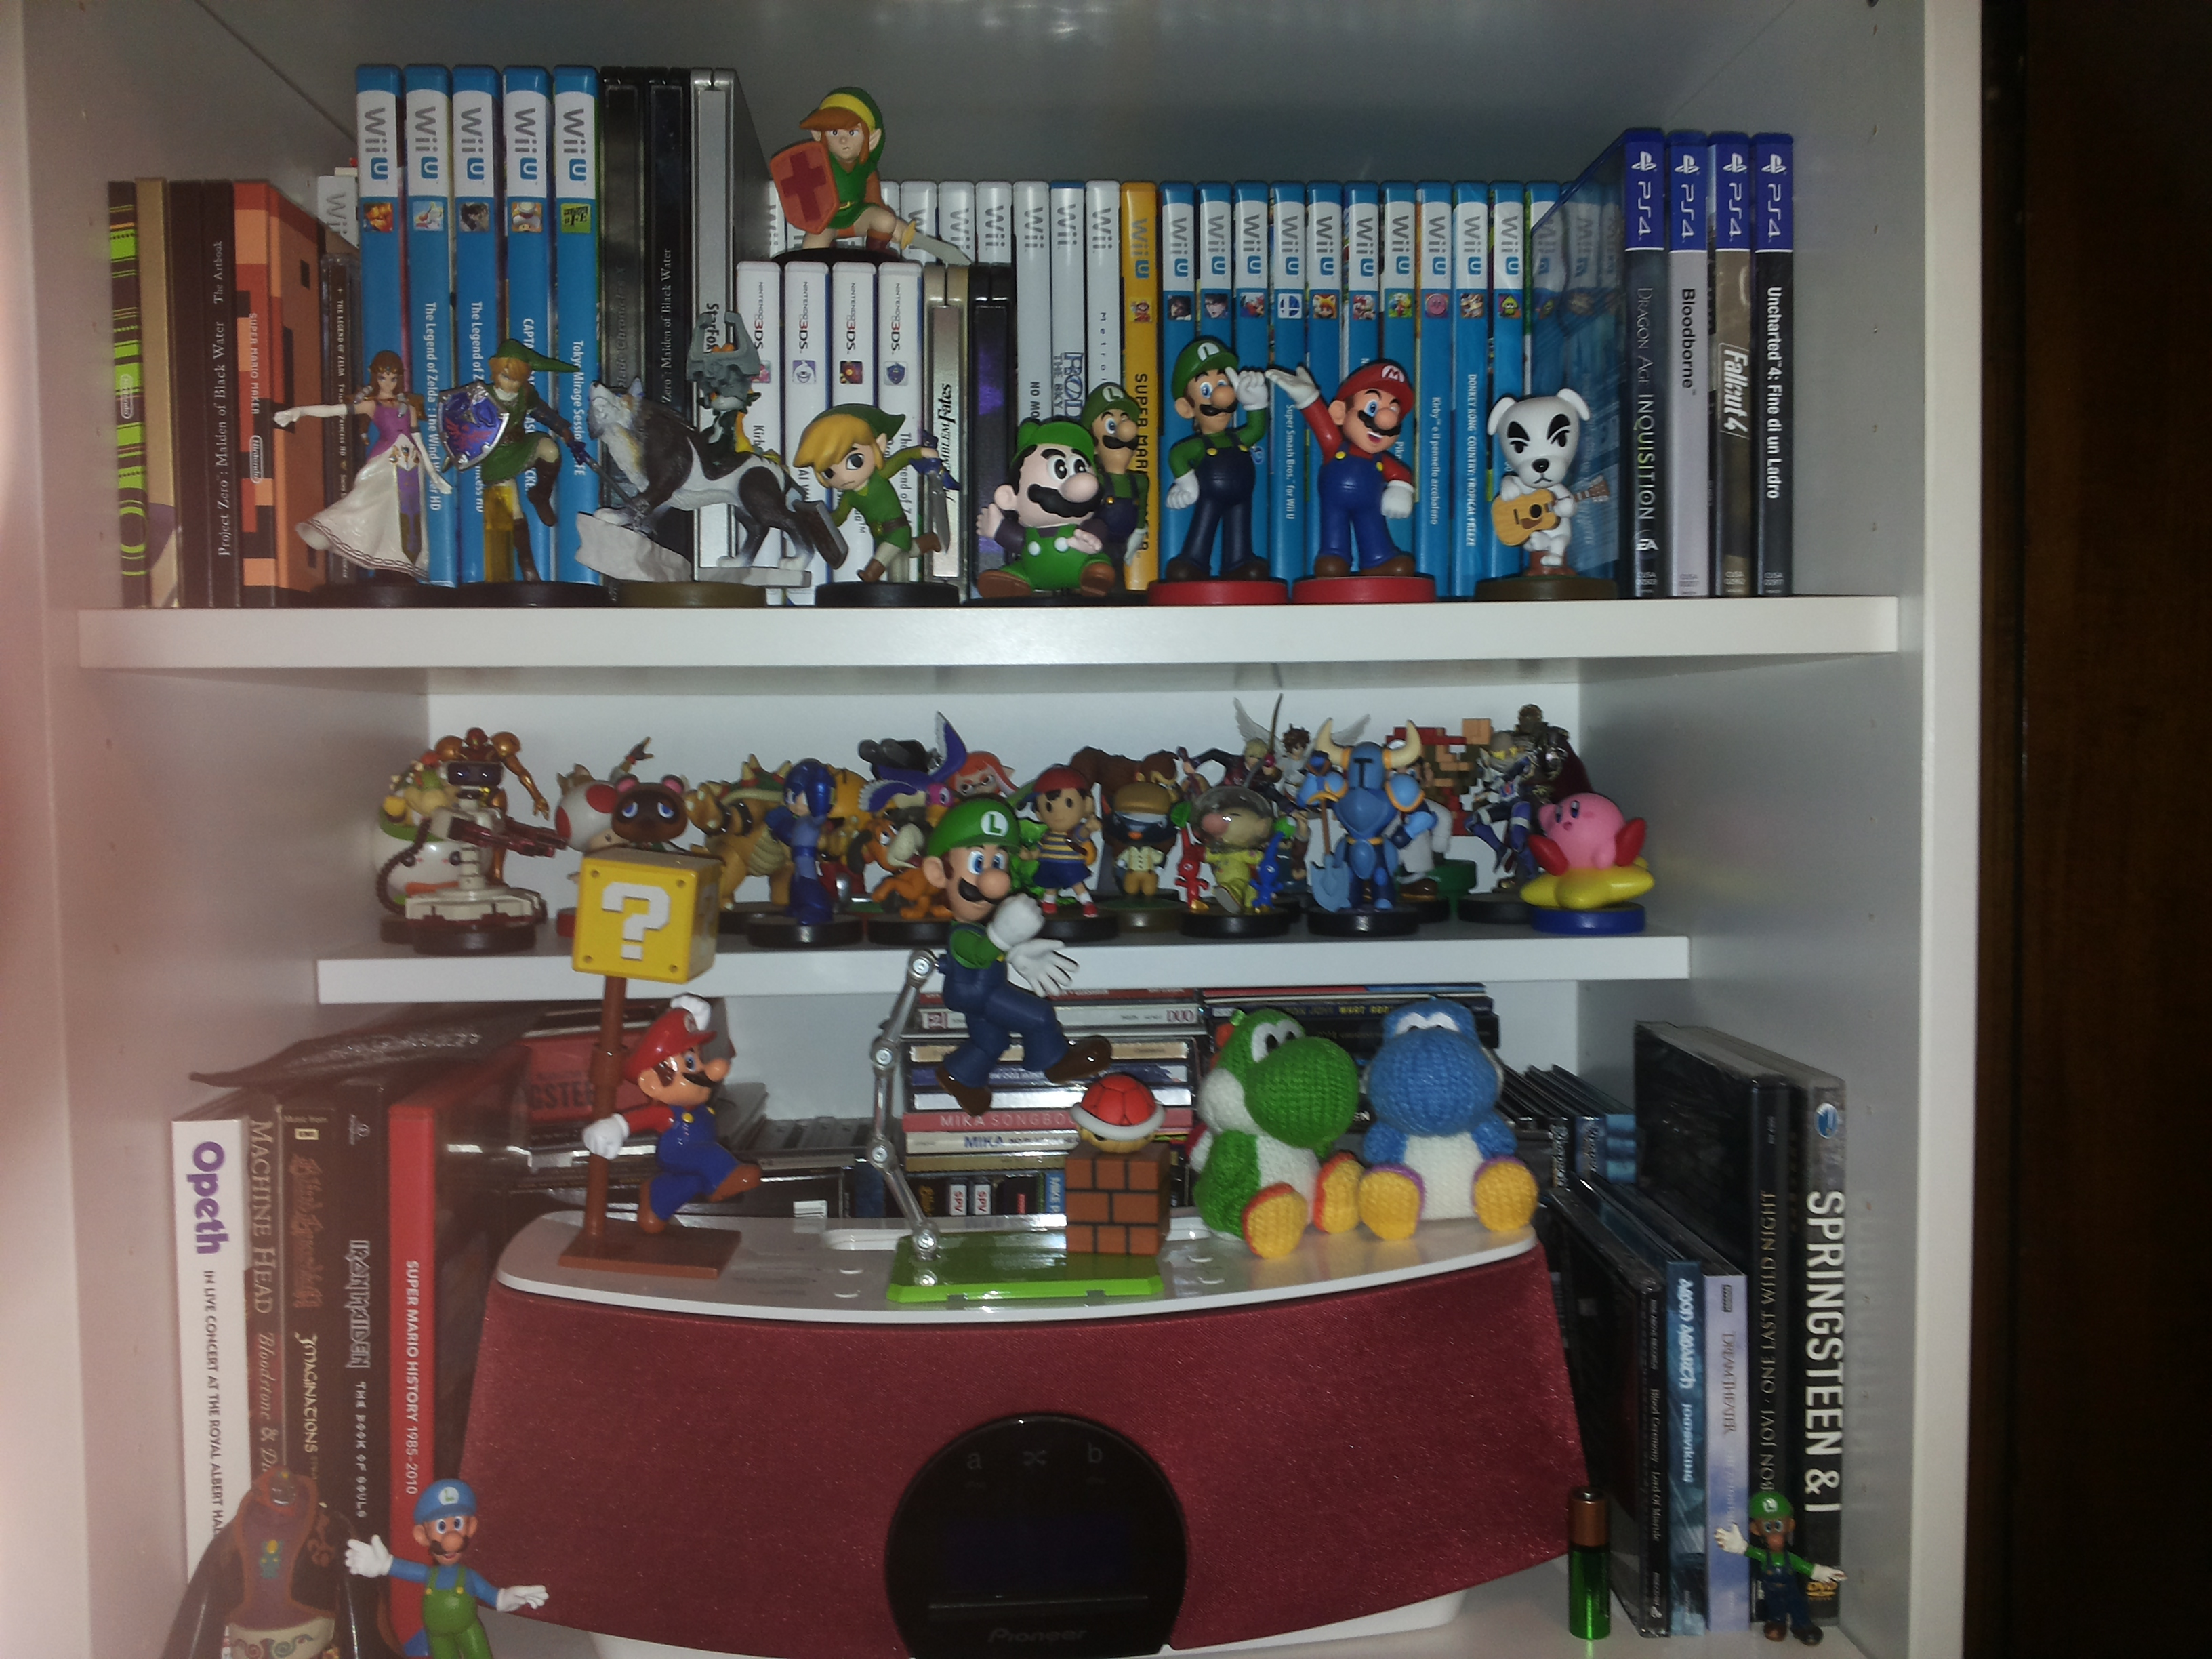 A Small Piece of My Game Collection